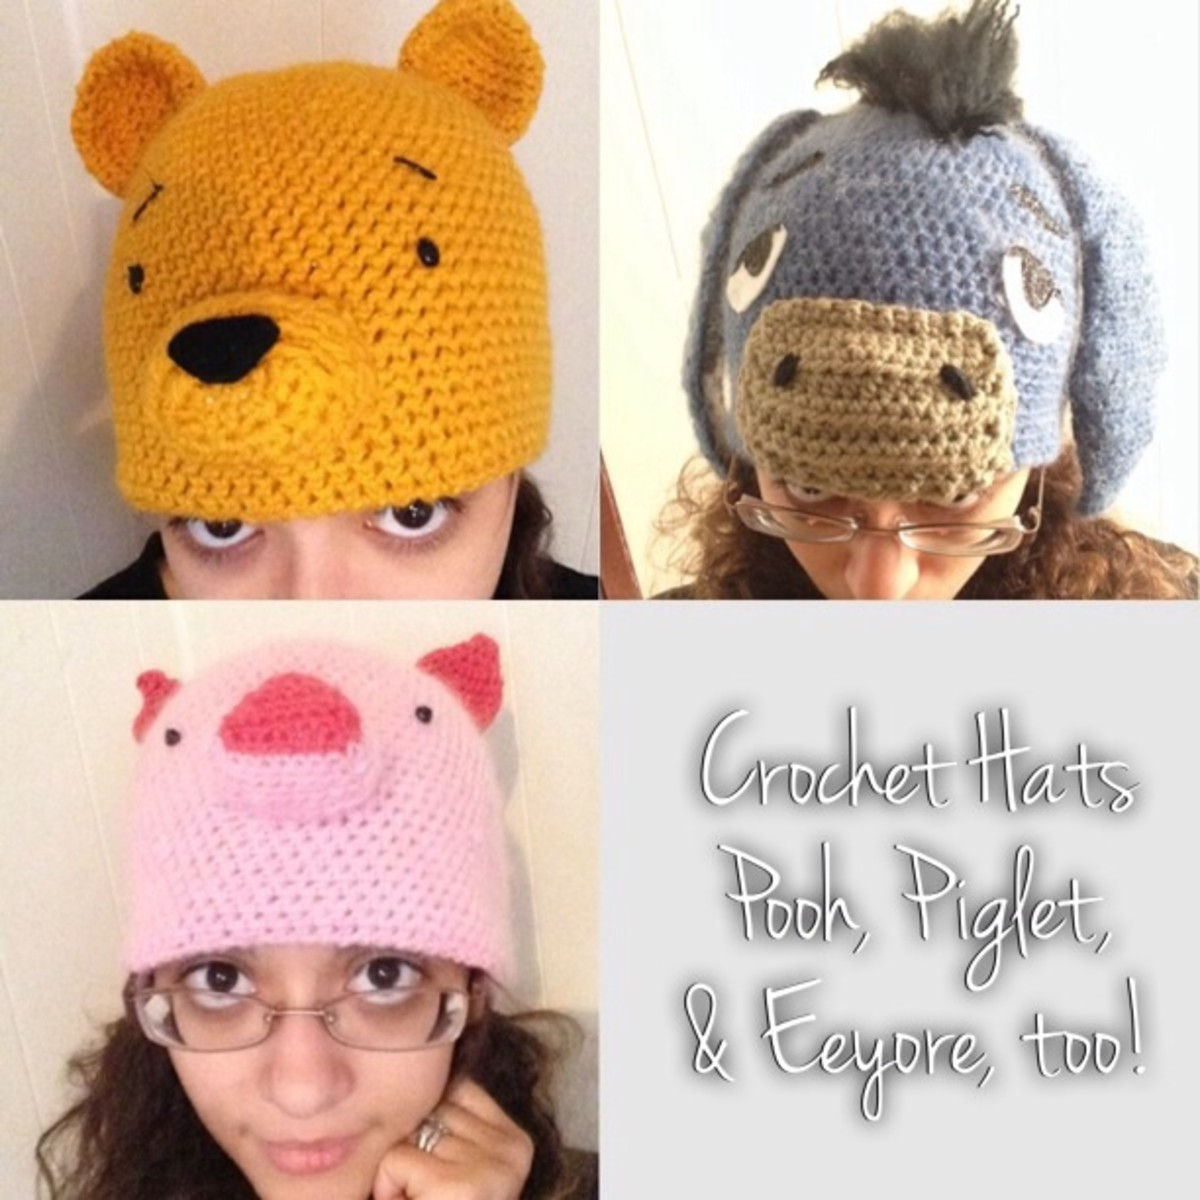 Crochet Hat Patterns: Winnie the Pooh, Piglet, and Eeyore